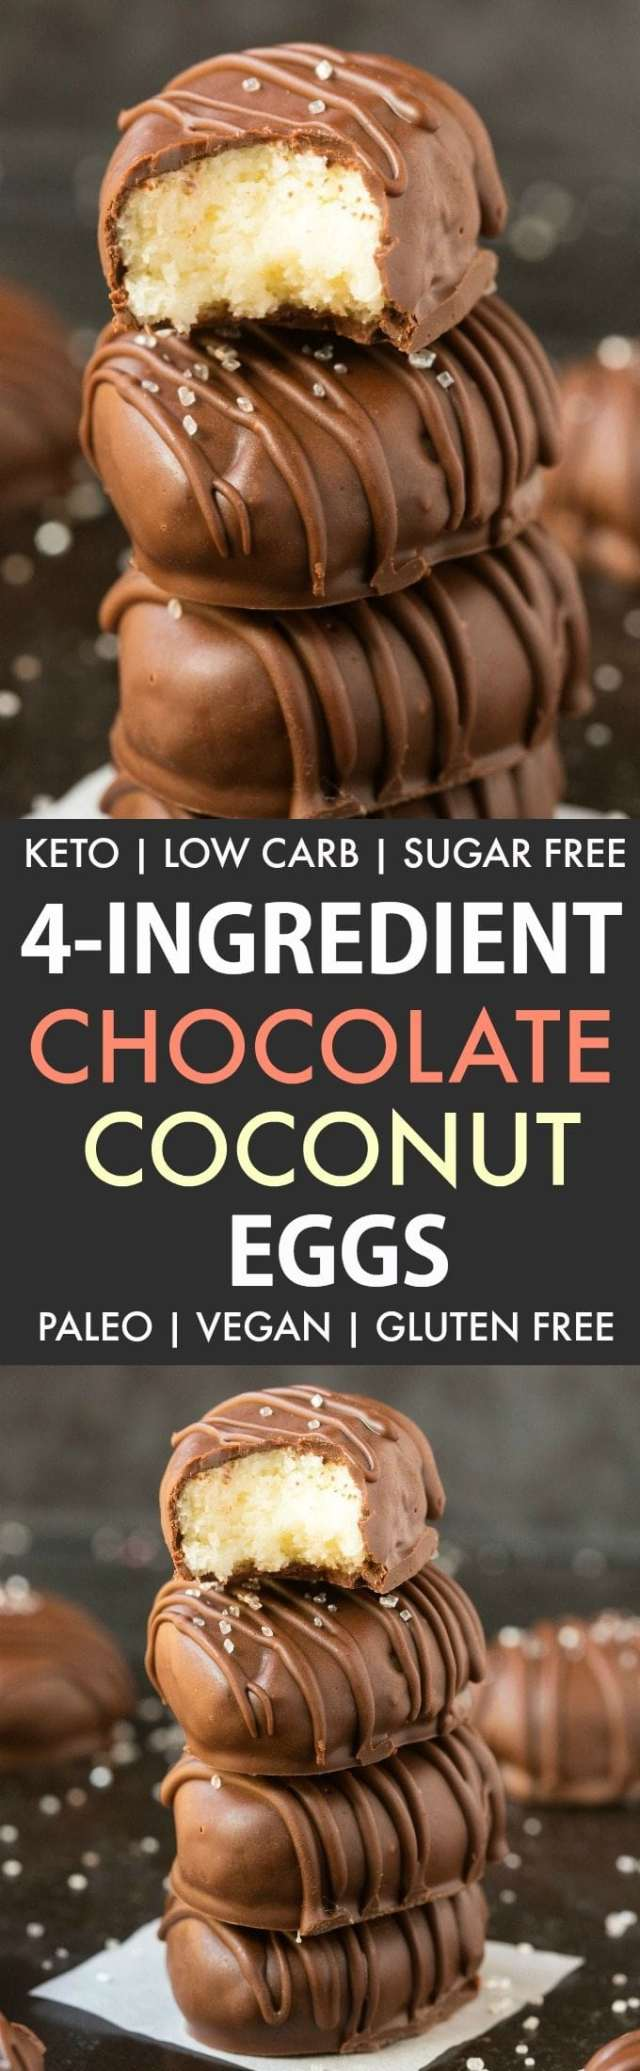 4-Ingredient No Bake Chocolate Coconut Eggs (Paleo, Vegan, Keto, Sugar Free, Gluten Free)-An easy recipe for chocolate coconut no bake Easter eggs using just 4 ingredients! Easy, delicious low carb candy which take less than 5 minutes to whip up- The perfect snack or holiday gift. #keto #ketodessert #nobake #ketosis | Recipe on thebigmansworld.com